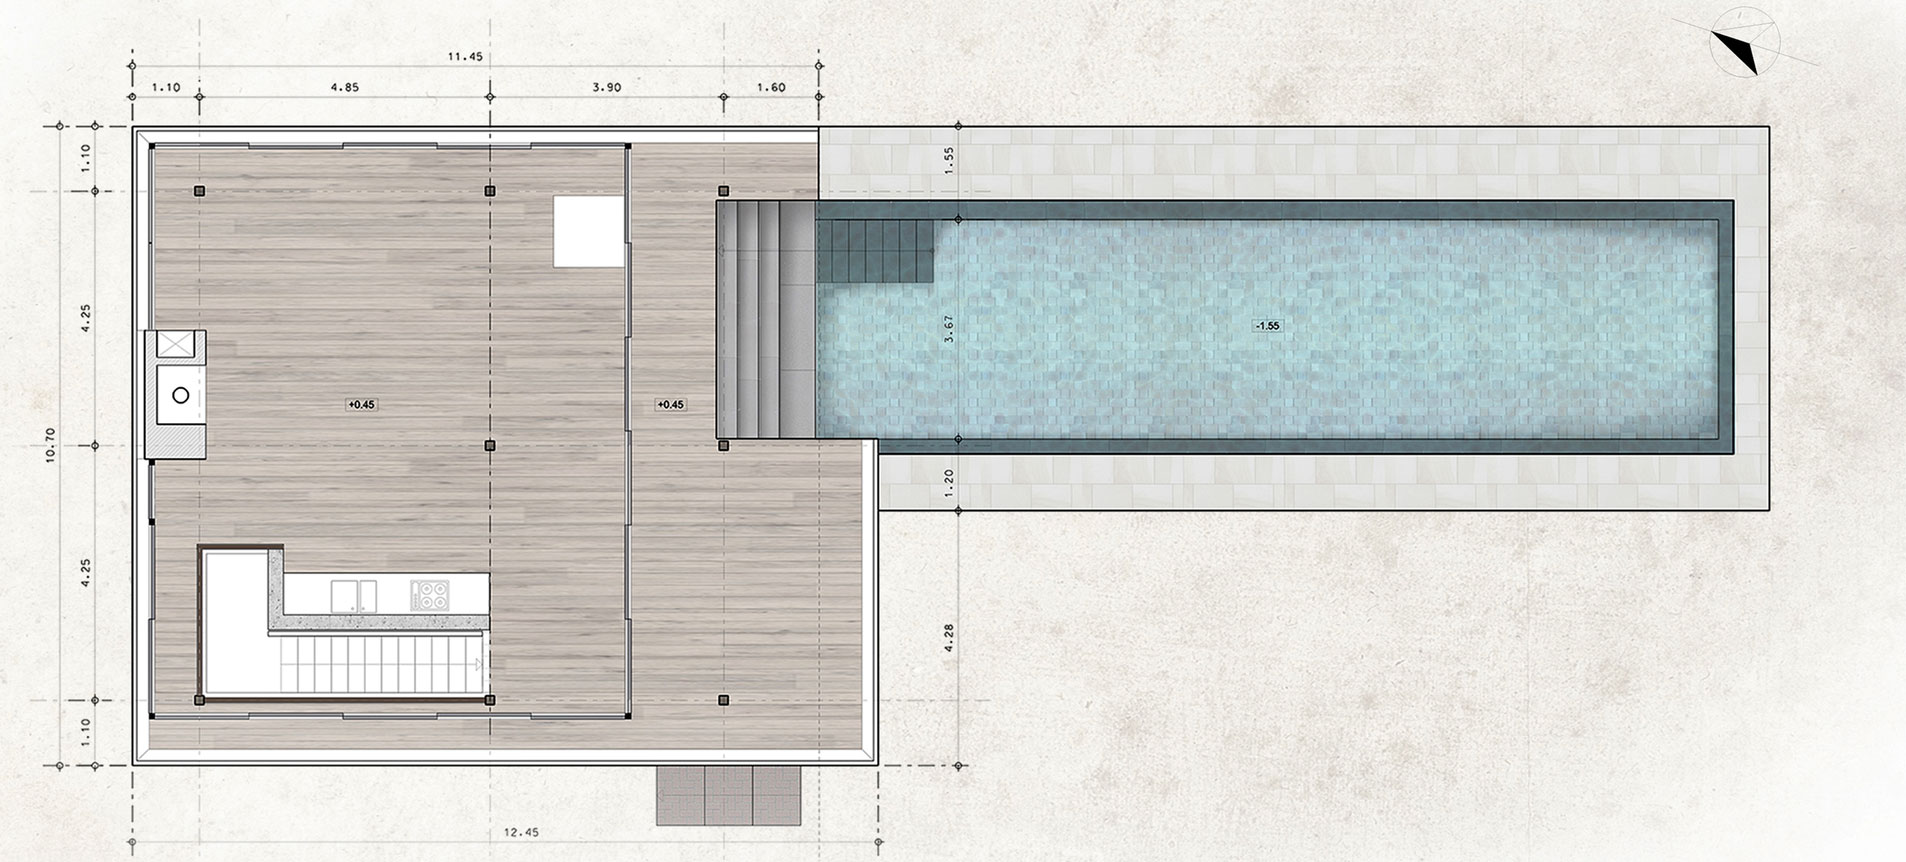 Pavilion at Architect's Residence in Nicosia by Kythreotis Architects-15